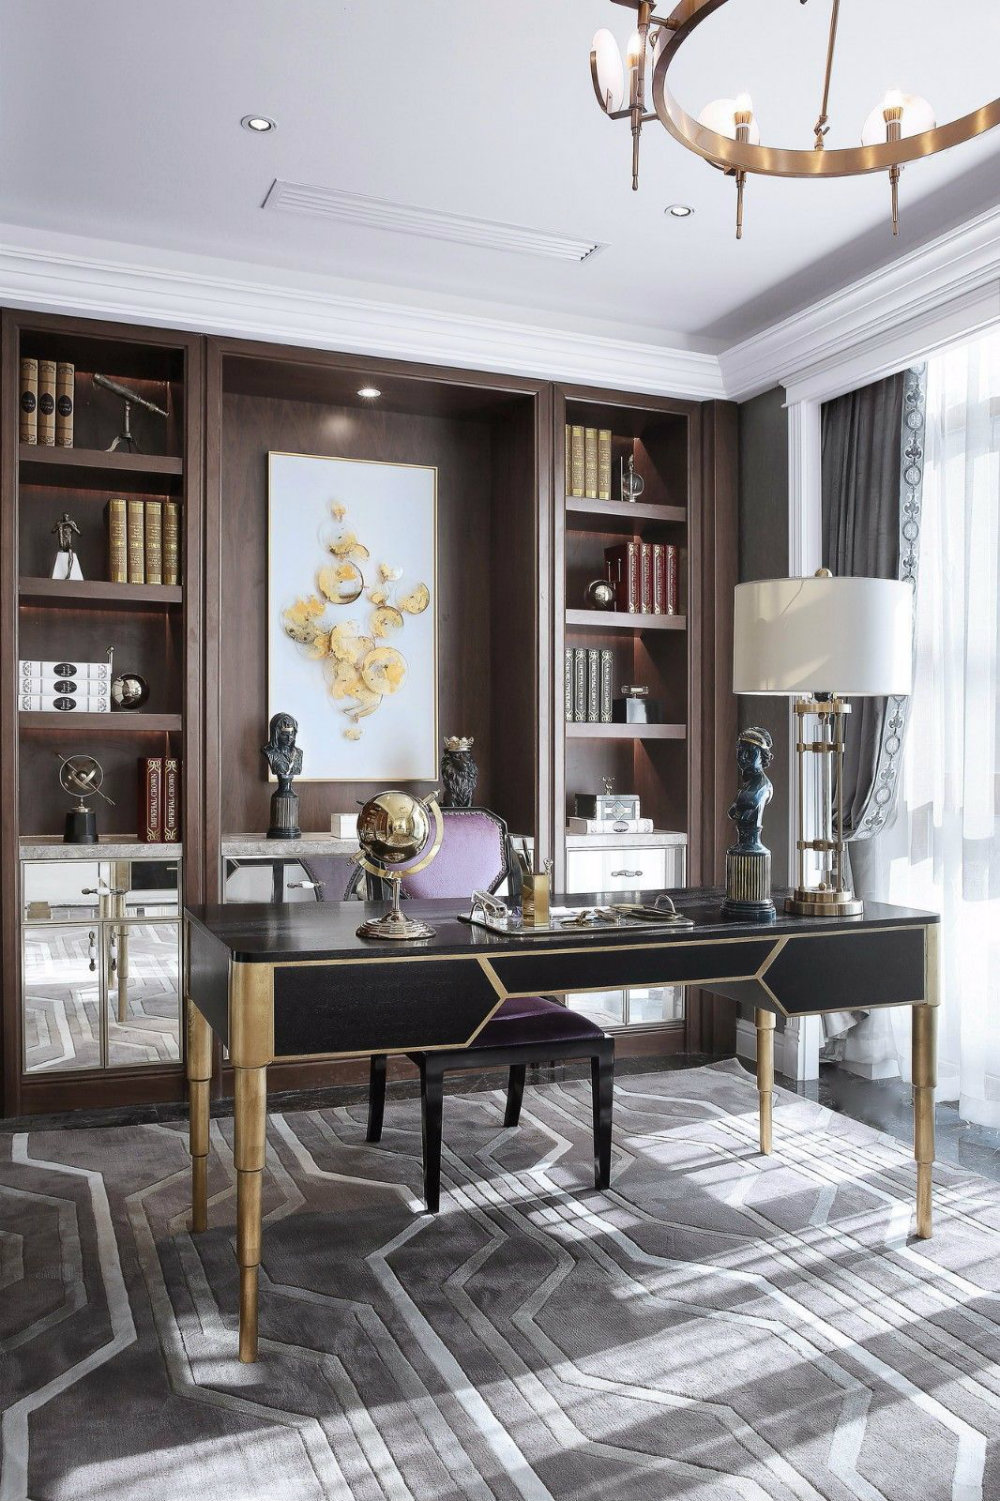 Home Office Decor Ideas How To Design A Workspace At Home